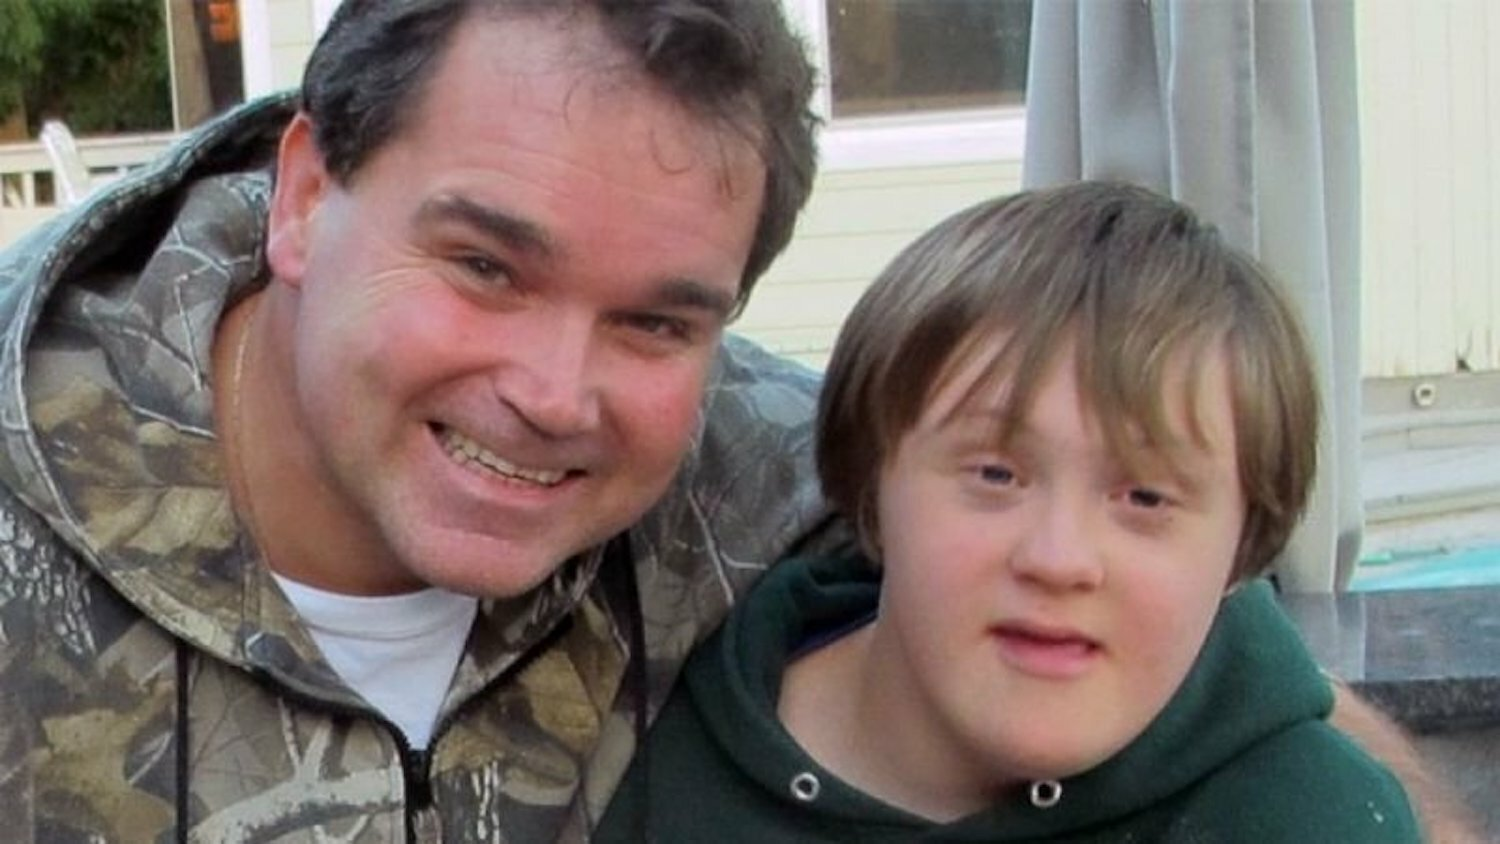 Christian Killoran and his son, Aiden, who has Down syndrome, have fought the Westhampton Beach School District with lawsuits since 2015 to allow the now 19-year-old to be integrated into his home district. KILLORAN FAMILY